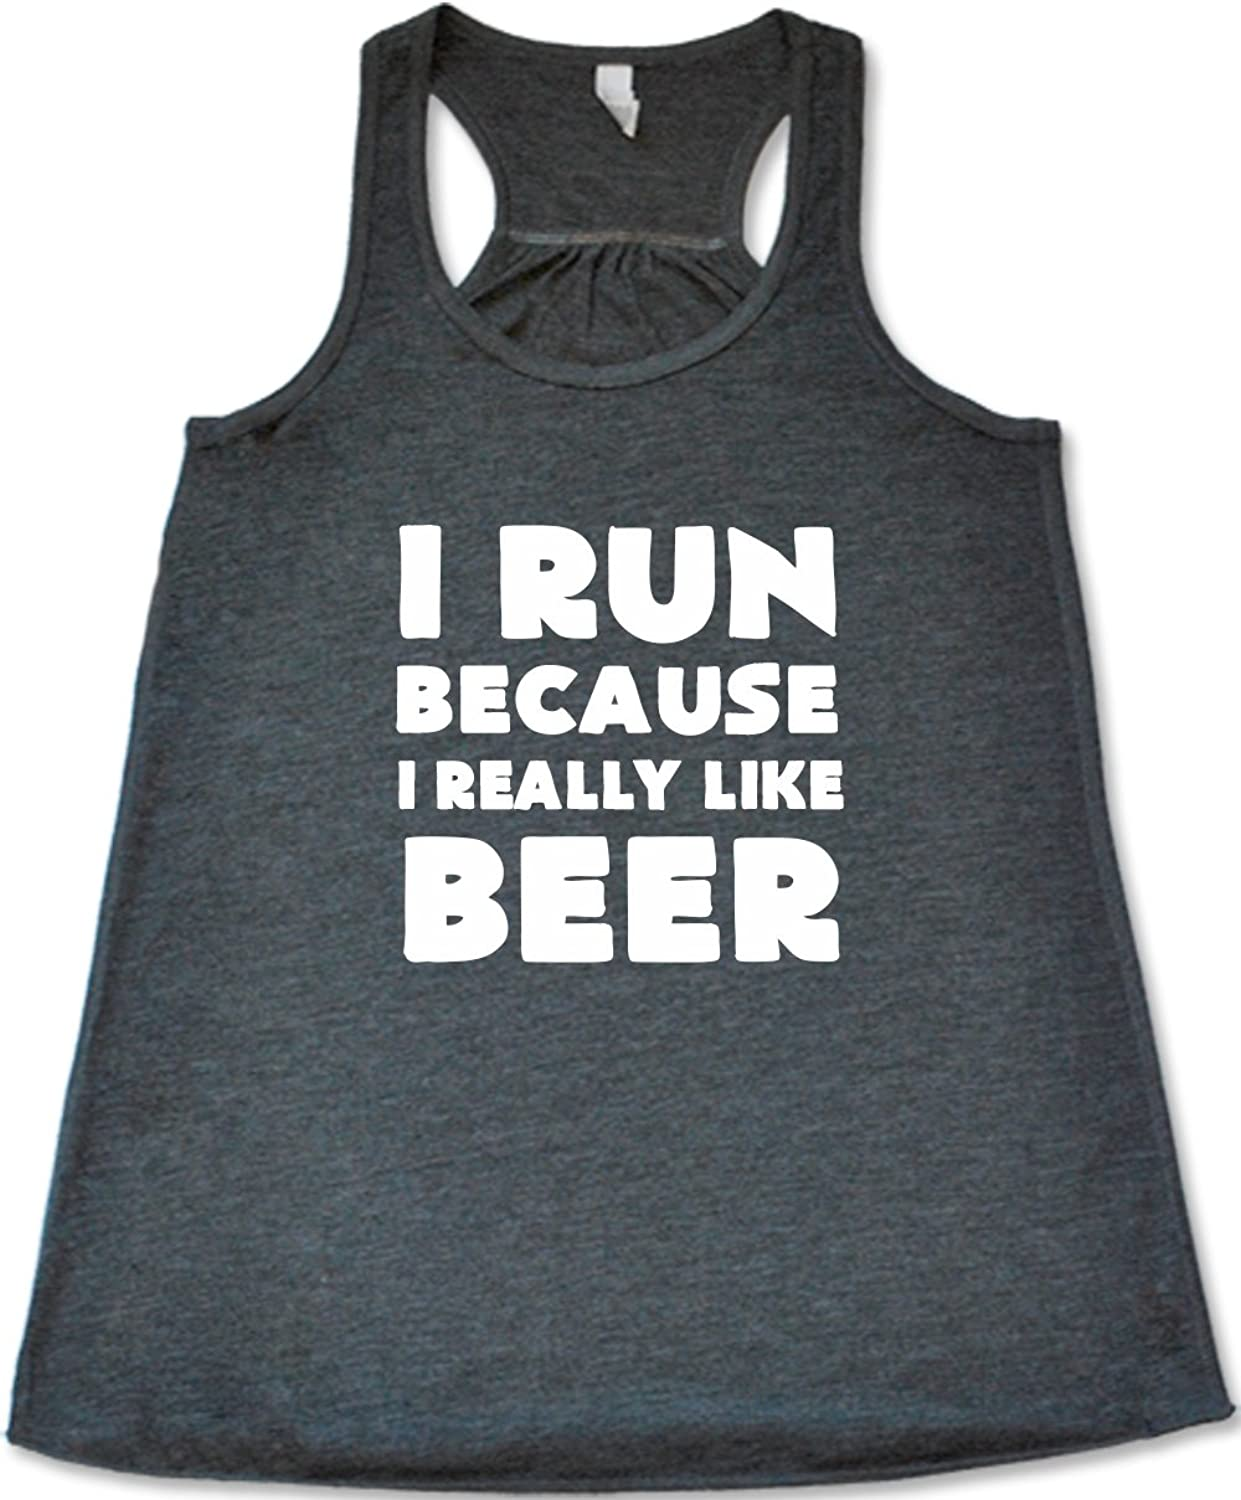 Women's I Run Because I Really Like Beer Tank Top - Workout Shirt